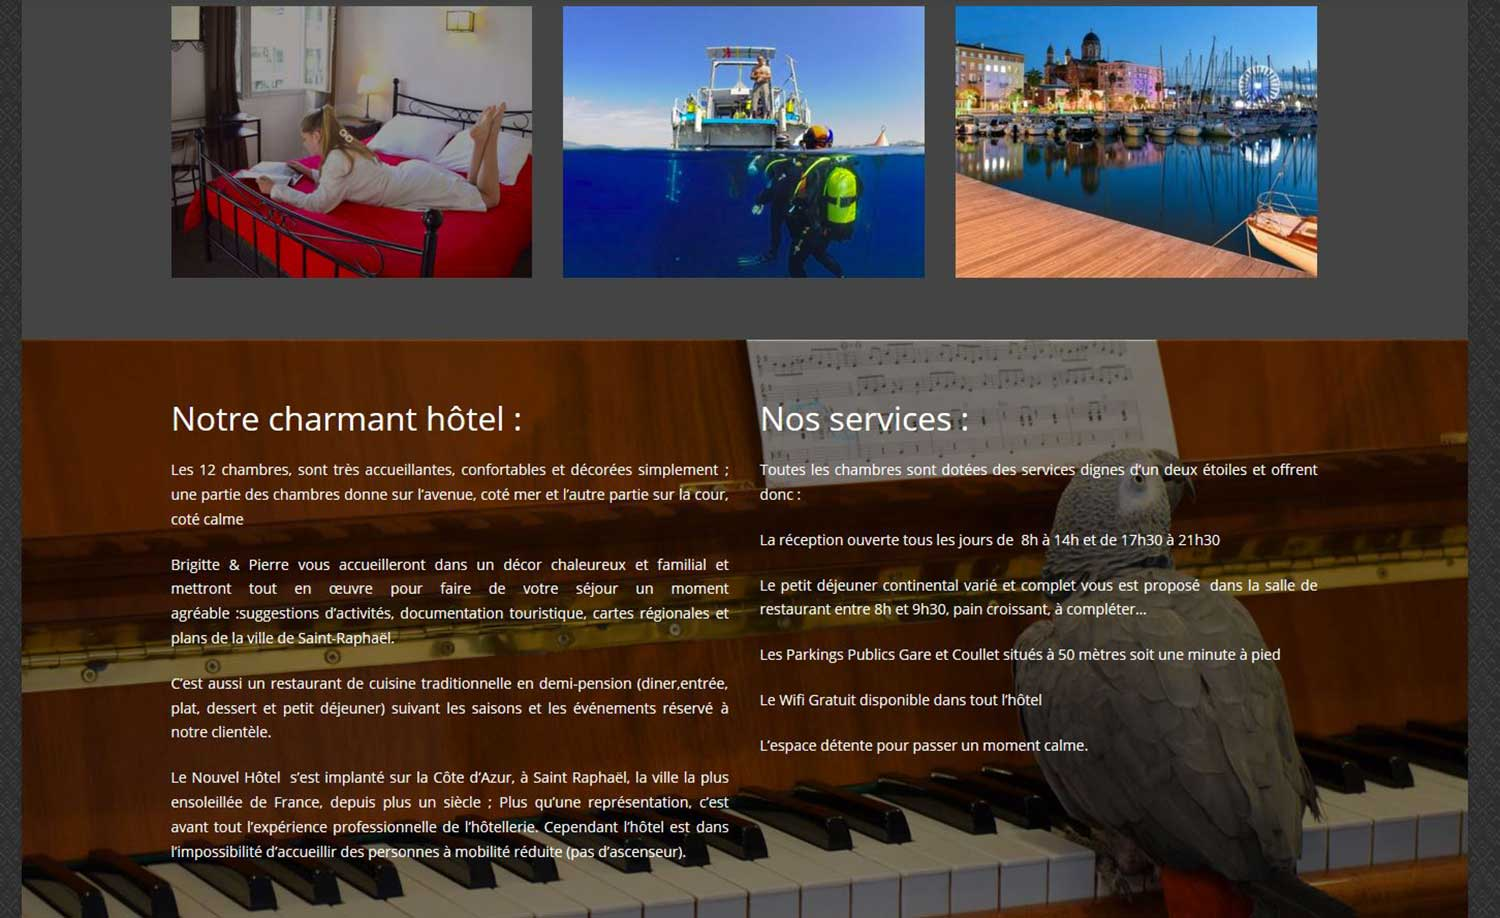 graphiste-nice-radhika-nouvel-hotel-page-d'acceuil-silder-03